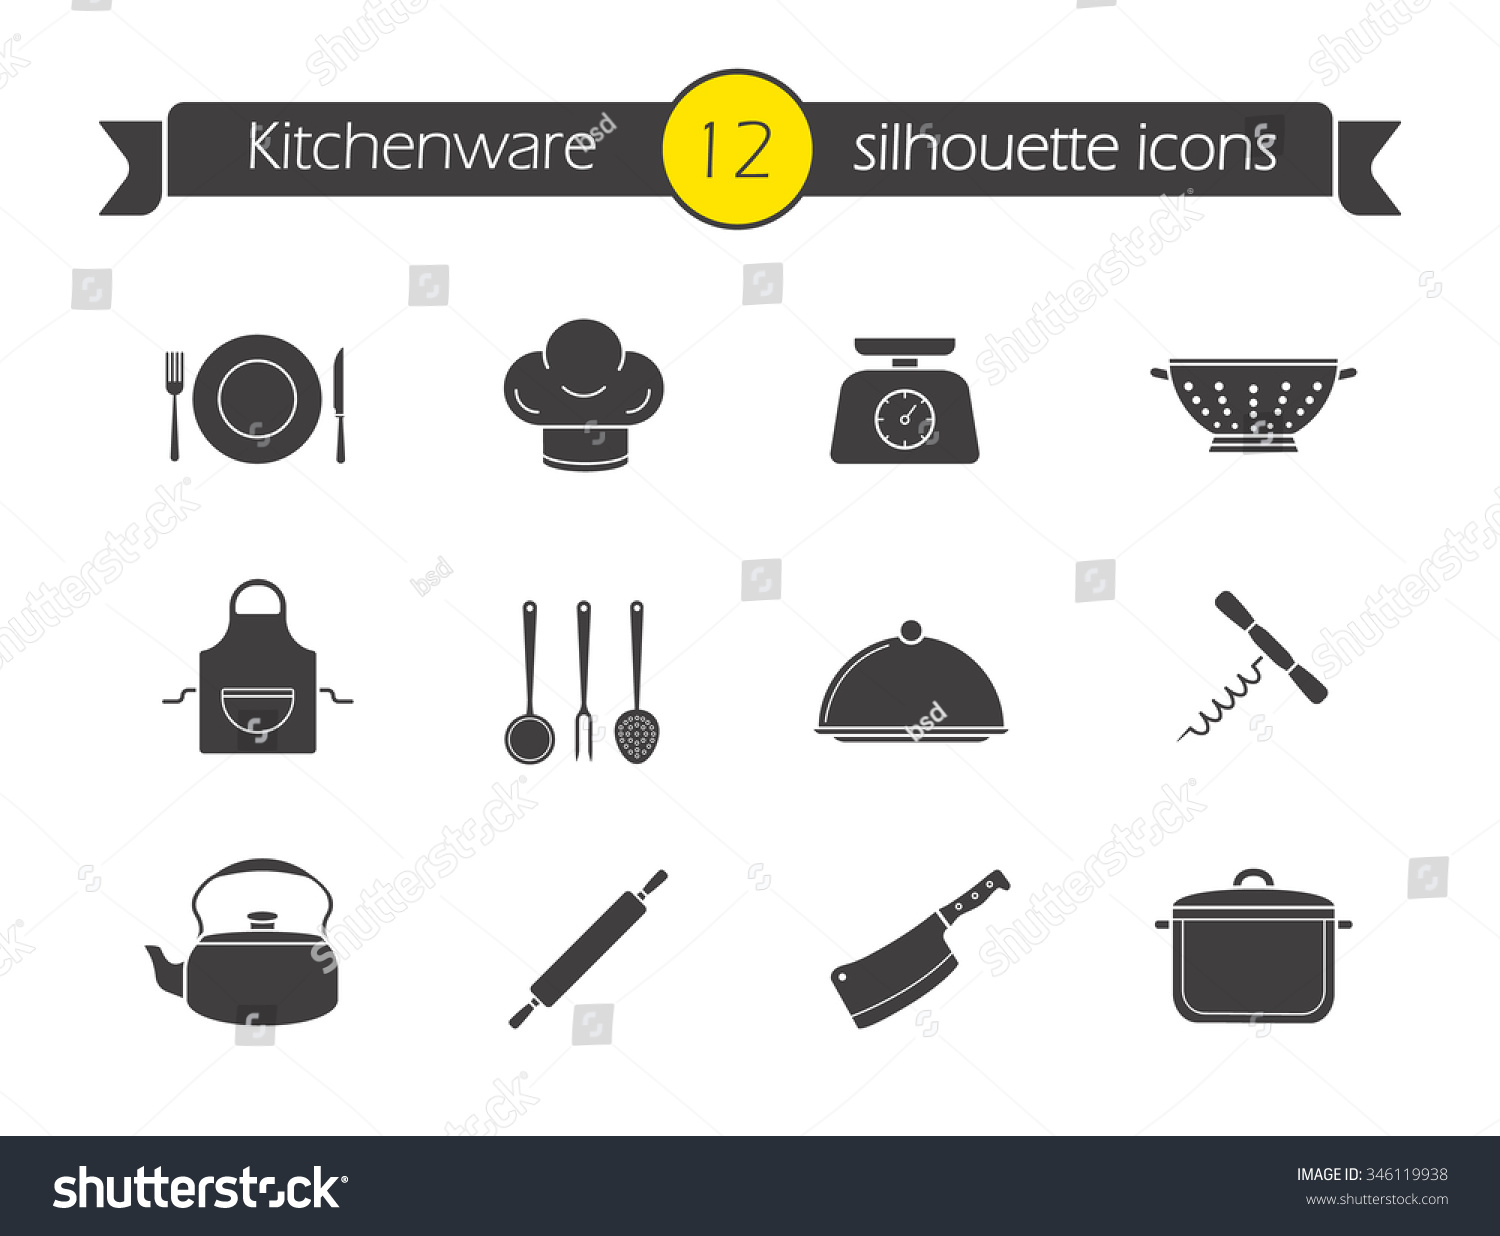 Restaurant Kitchen Toolste kitchen tools silhouette icons set household stock illustration